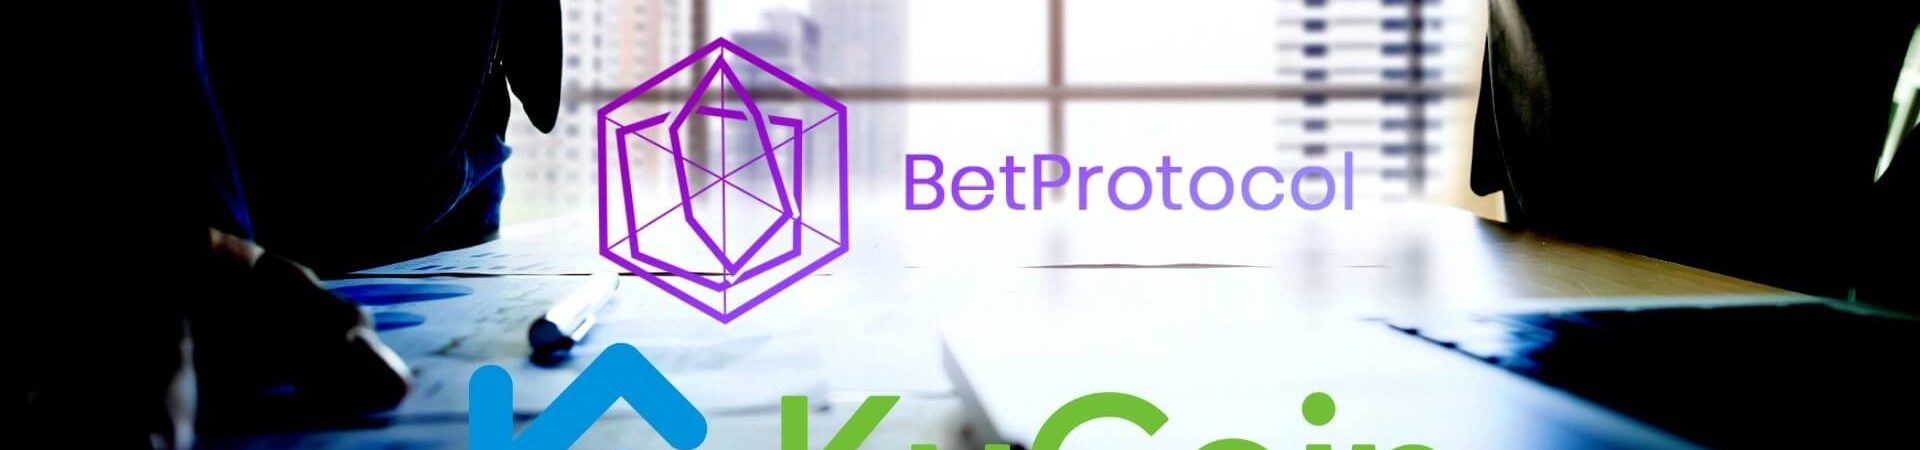 KuCoin and BetProtocol Partner To Enable Playing Games With KCS